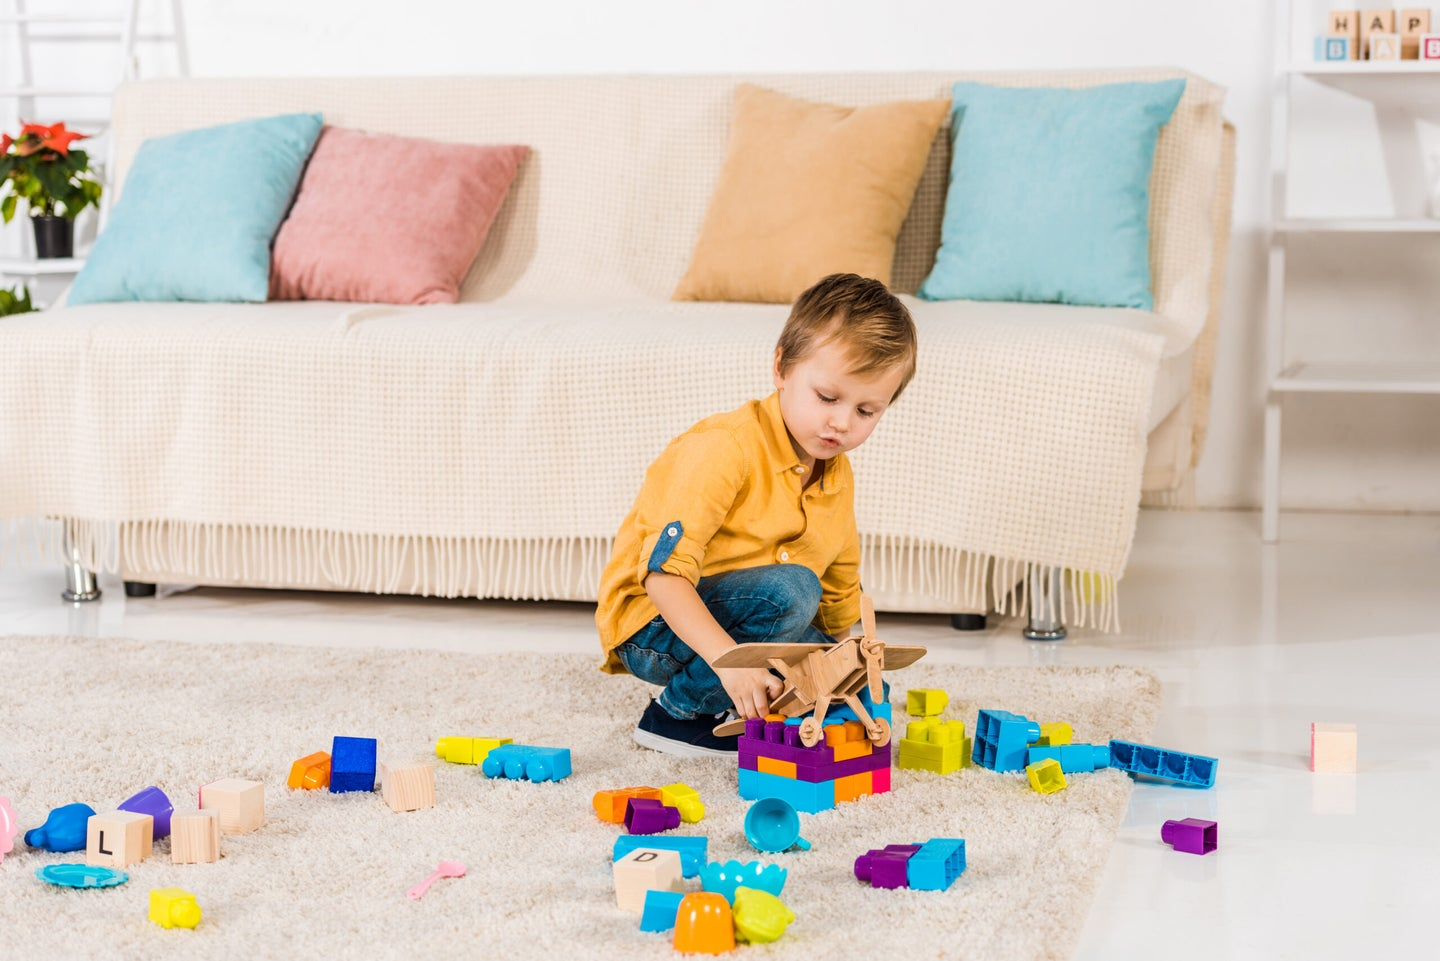 Growing up without a permanent home can negatively affect children's health